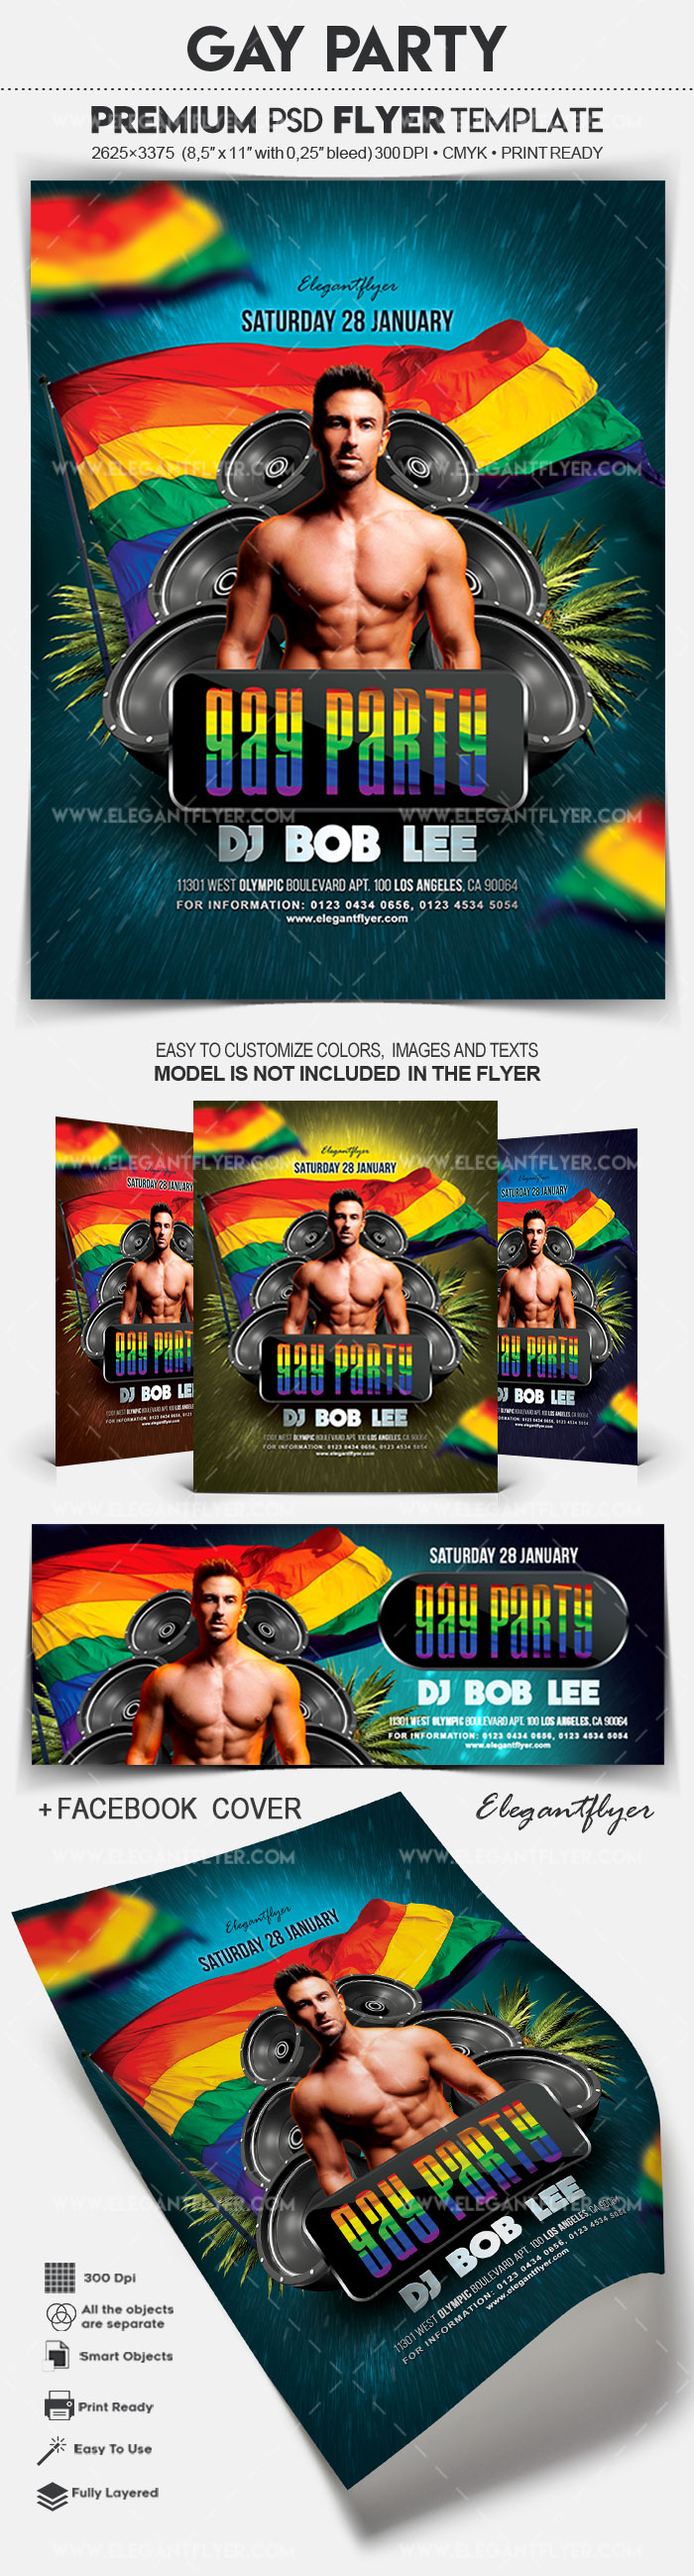 Gay Party Poster Template